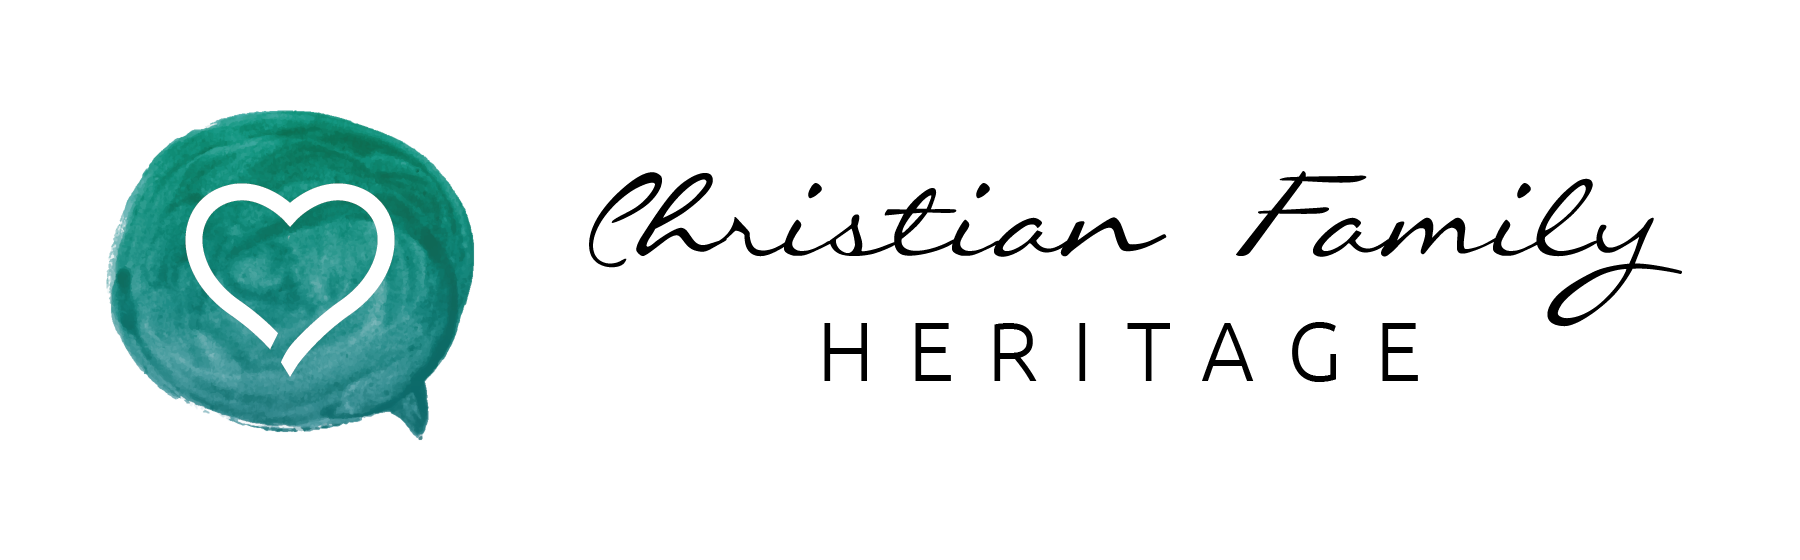 Christian Family Heritage